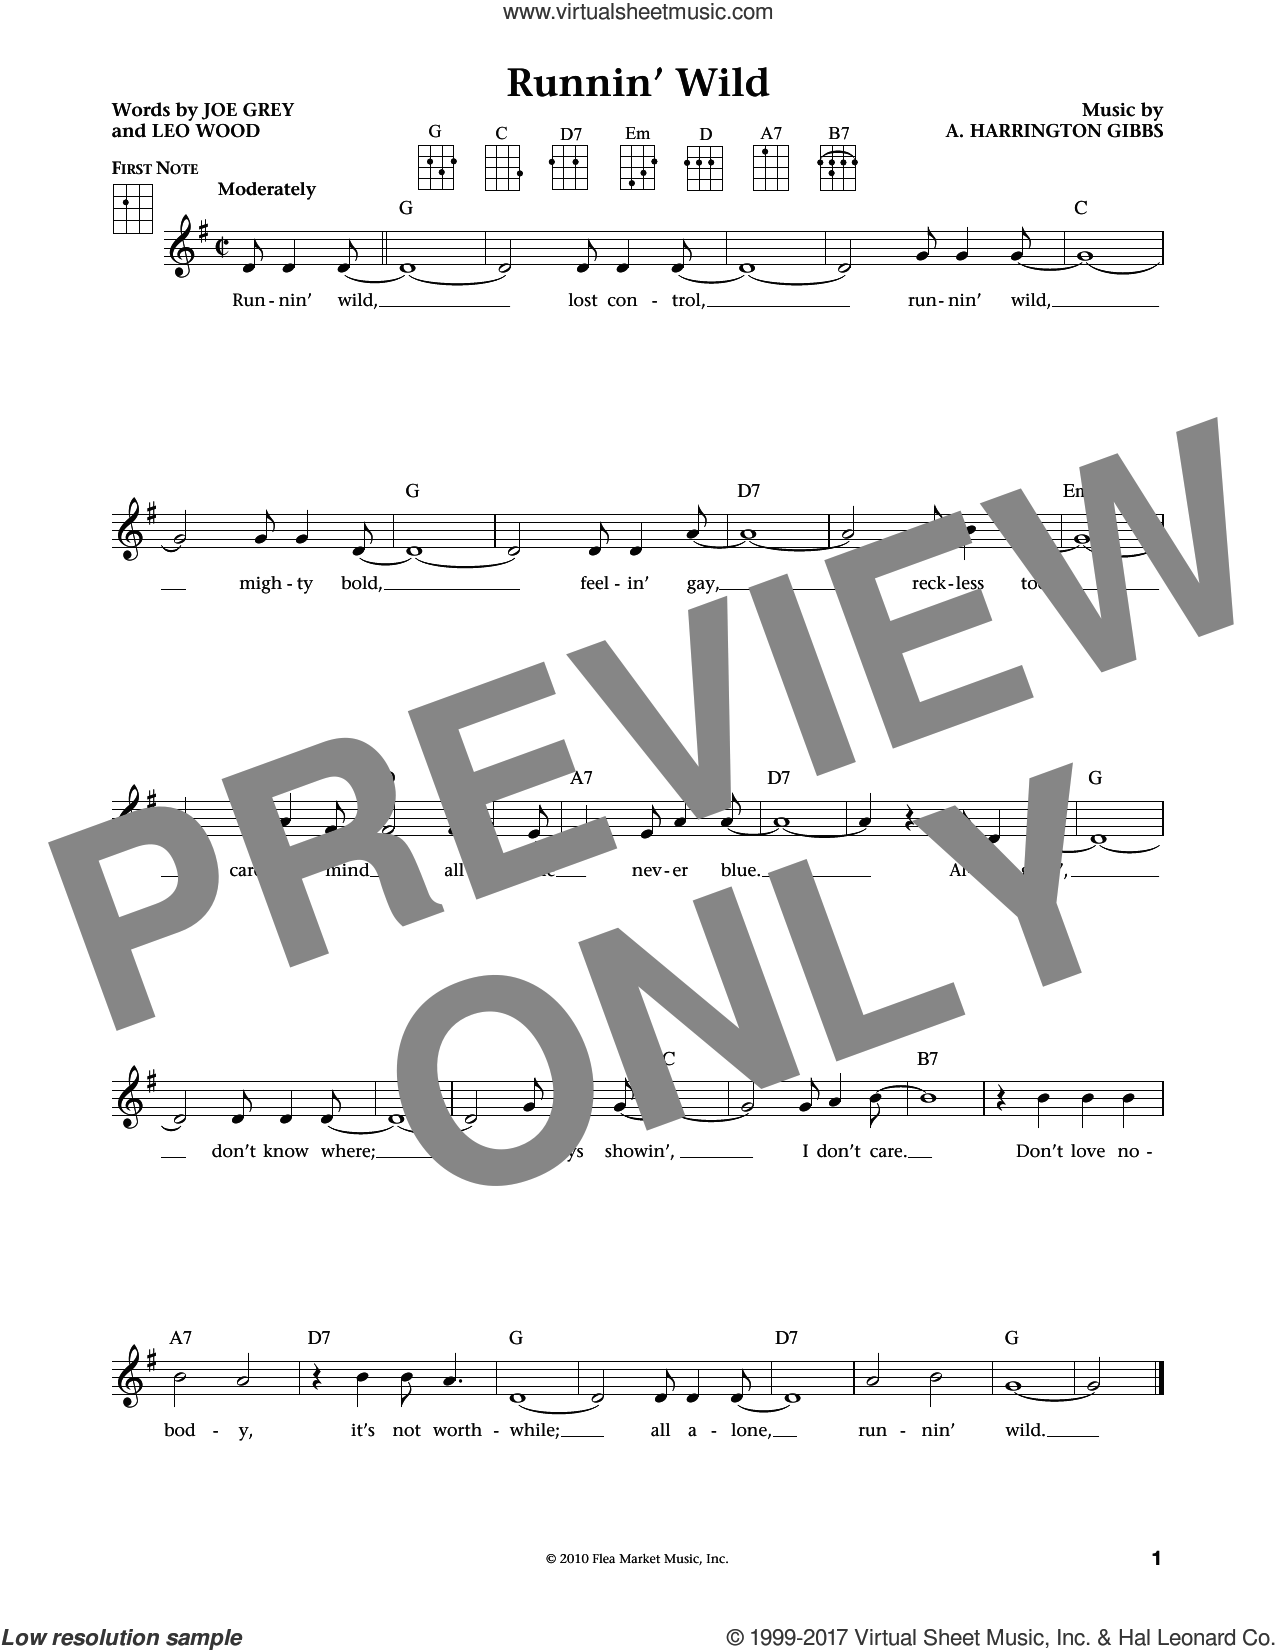 Runnin' Wild sheet music for ukulele by Leo Woods, Jim Beloff, Liz Beloff, A. Harrington Gibbs and Joe Grey, intermediate skill level